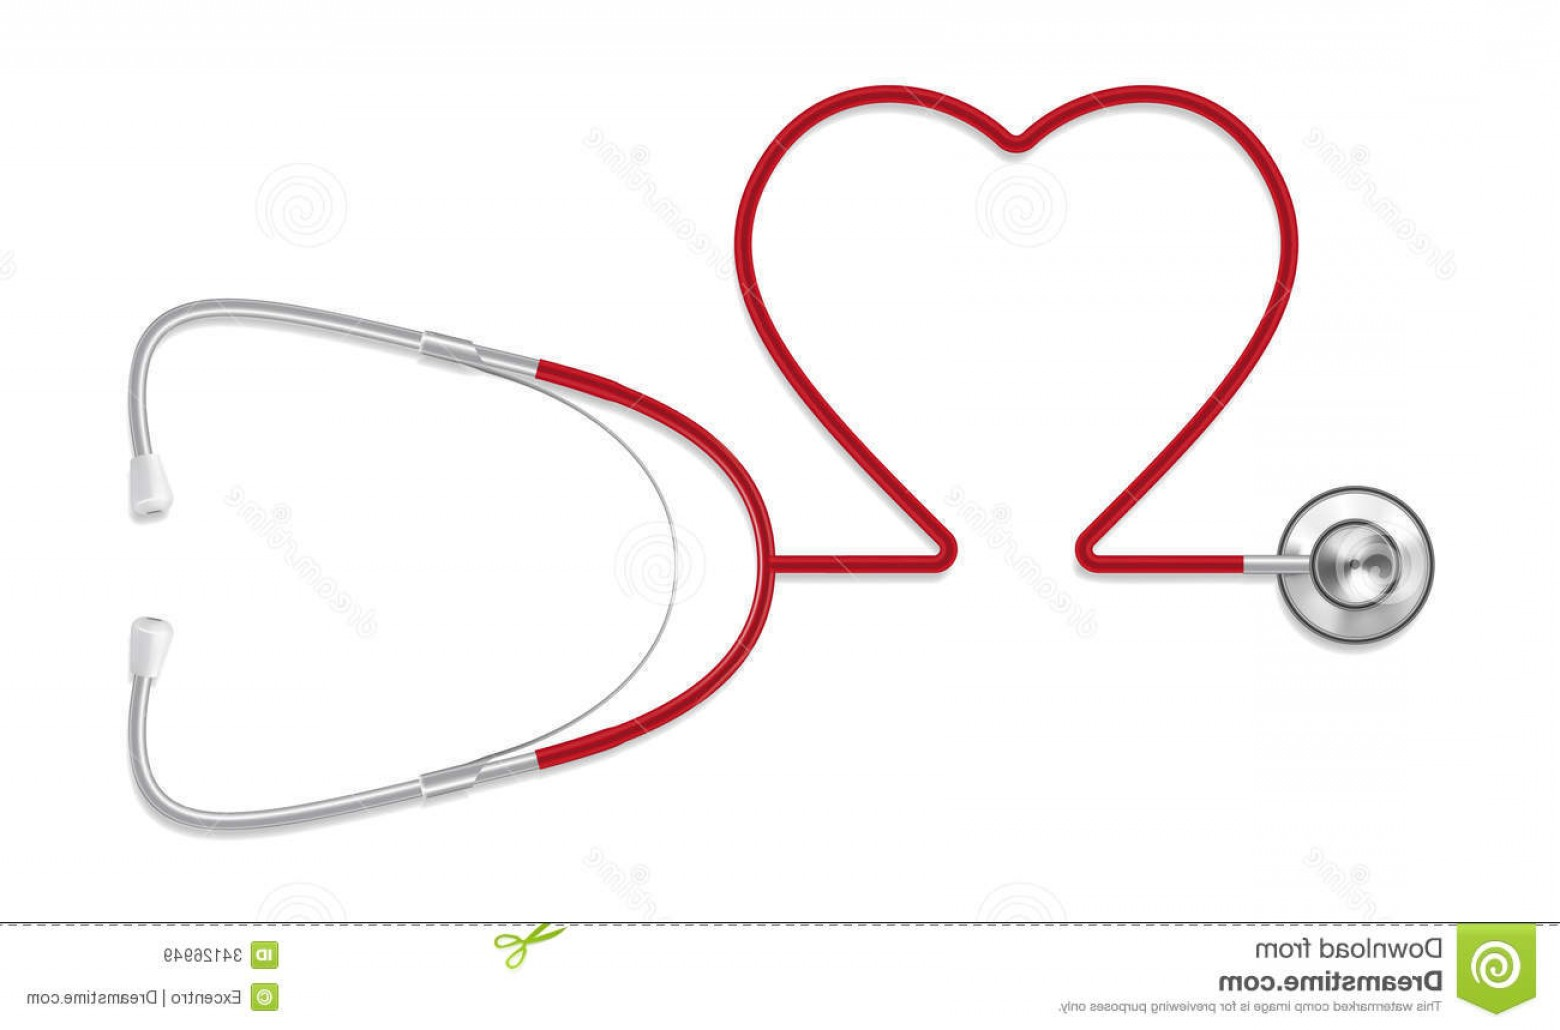 Stethoscope With Heart Vector Art: Royalty Free Stock Images Stethoscope Heart Shaped Illustration Eps Image